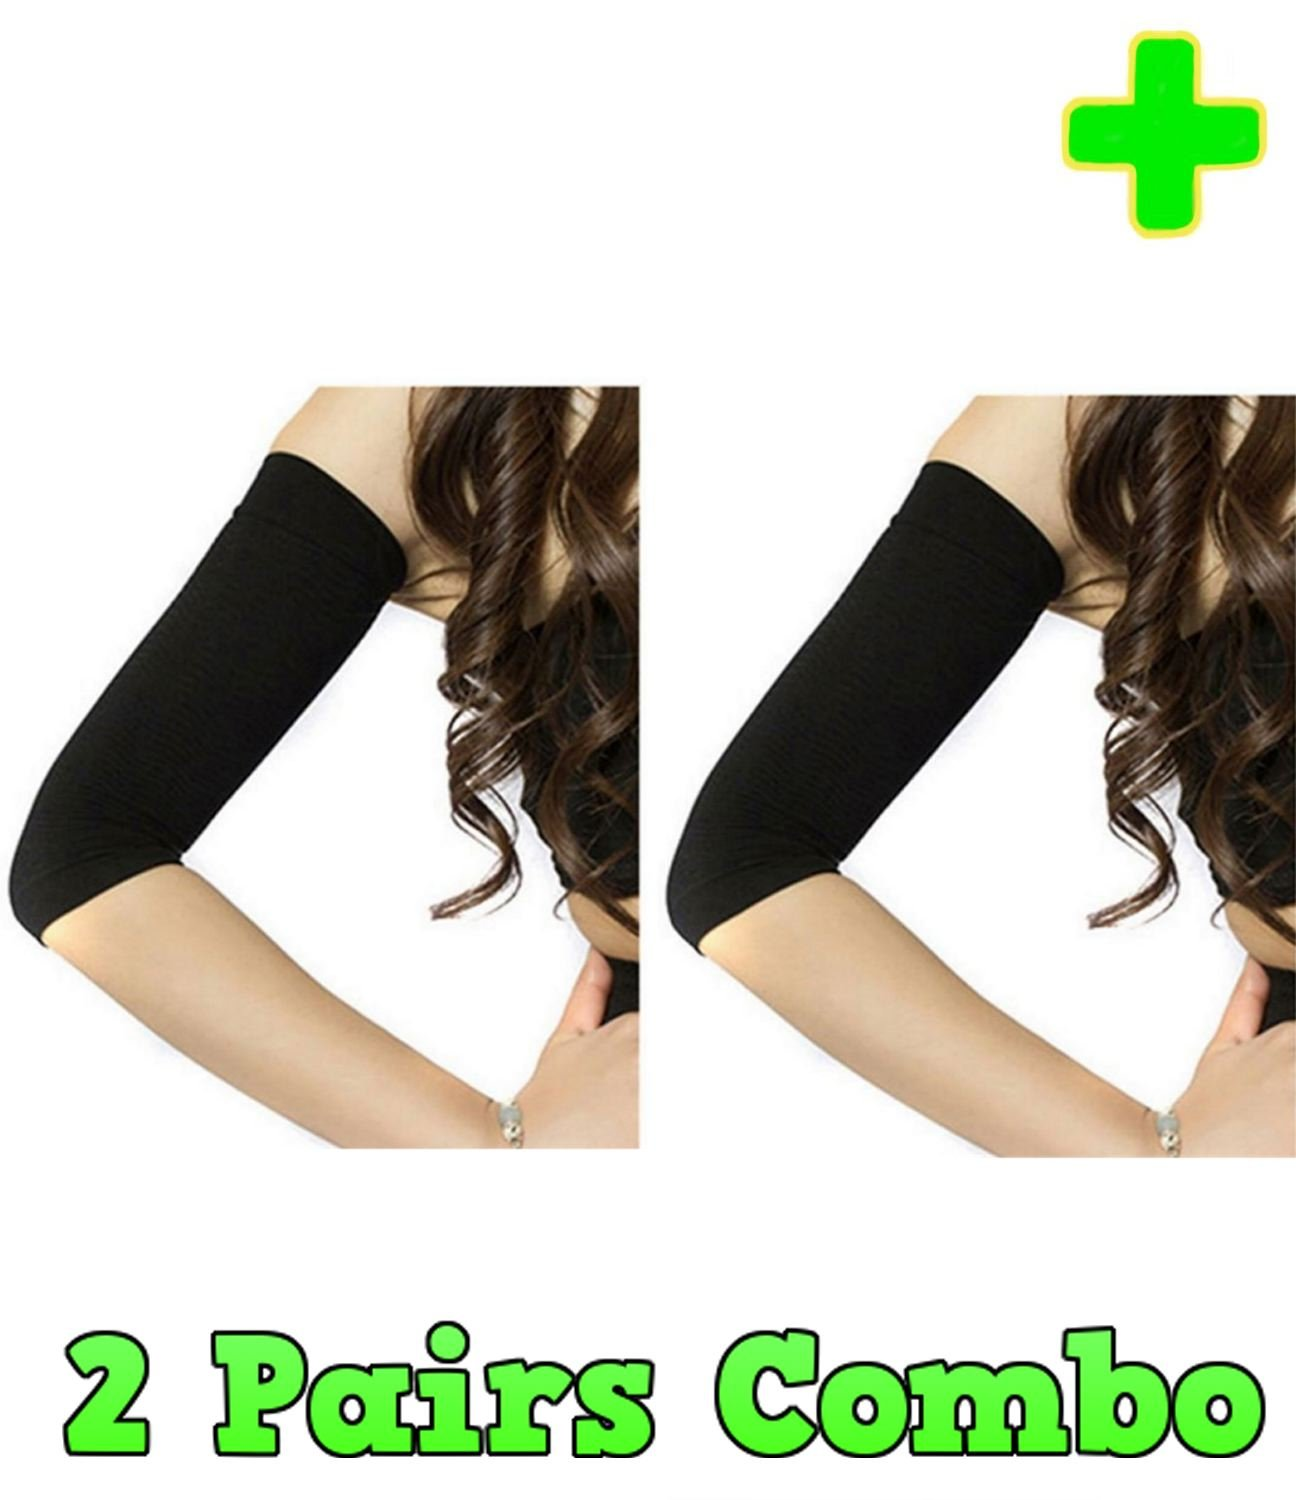 89366d10c12ec HealthyNees 2 Pairs Combo Arm Slimming Compression Support Upper Arms Shaper  Toning Sleeve Multi Sizes (